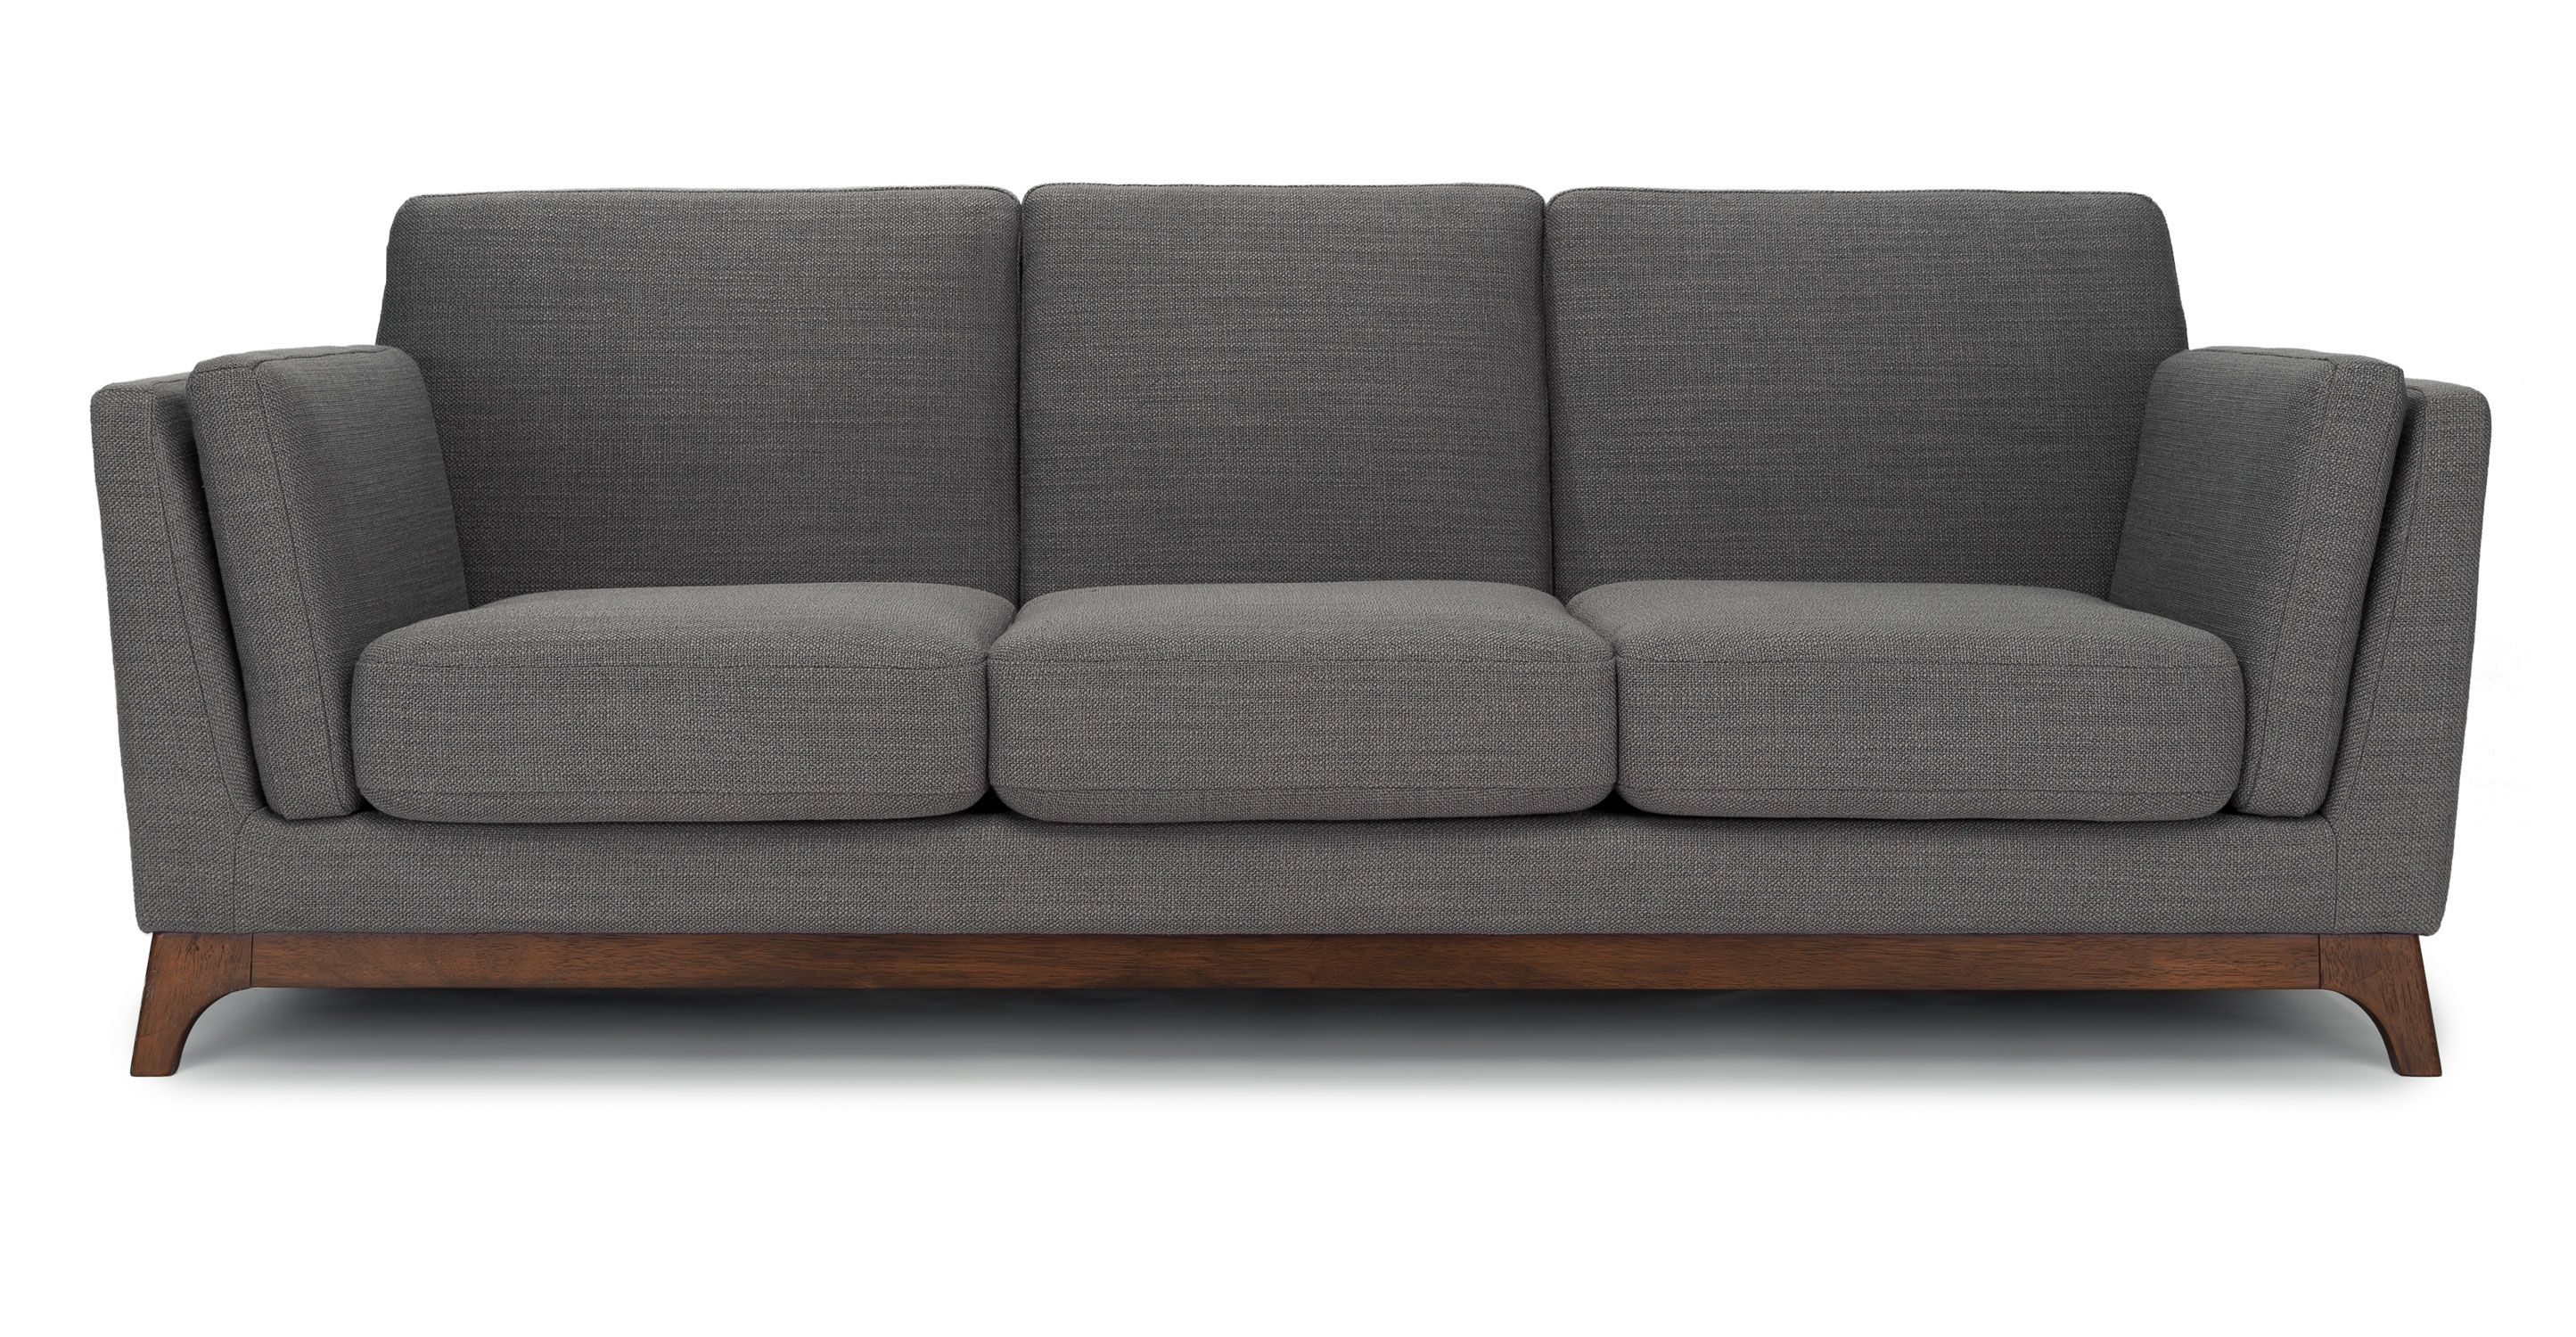 Discount Scandinavian Furniture Gray Sofa 3 Seater With Solid Wood Legs Article Ceni